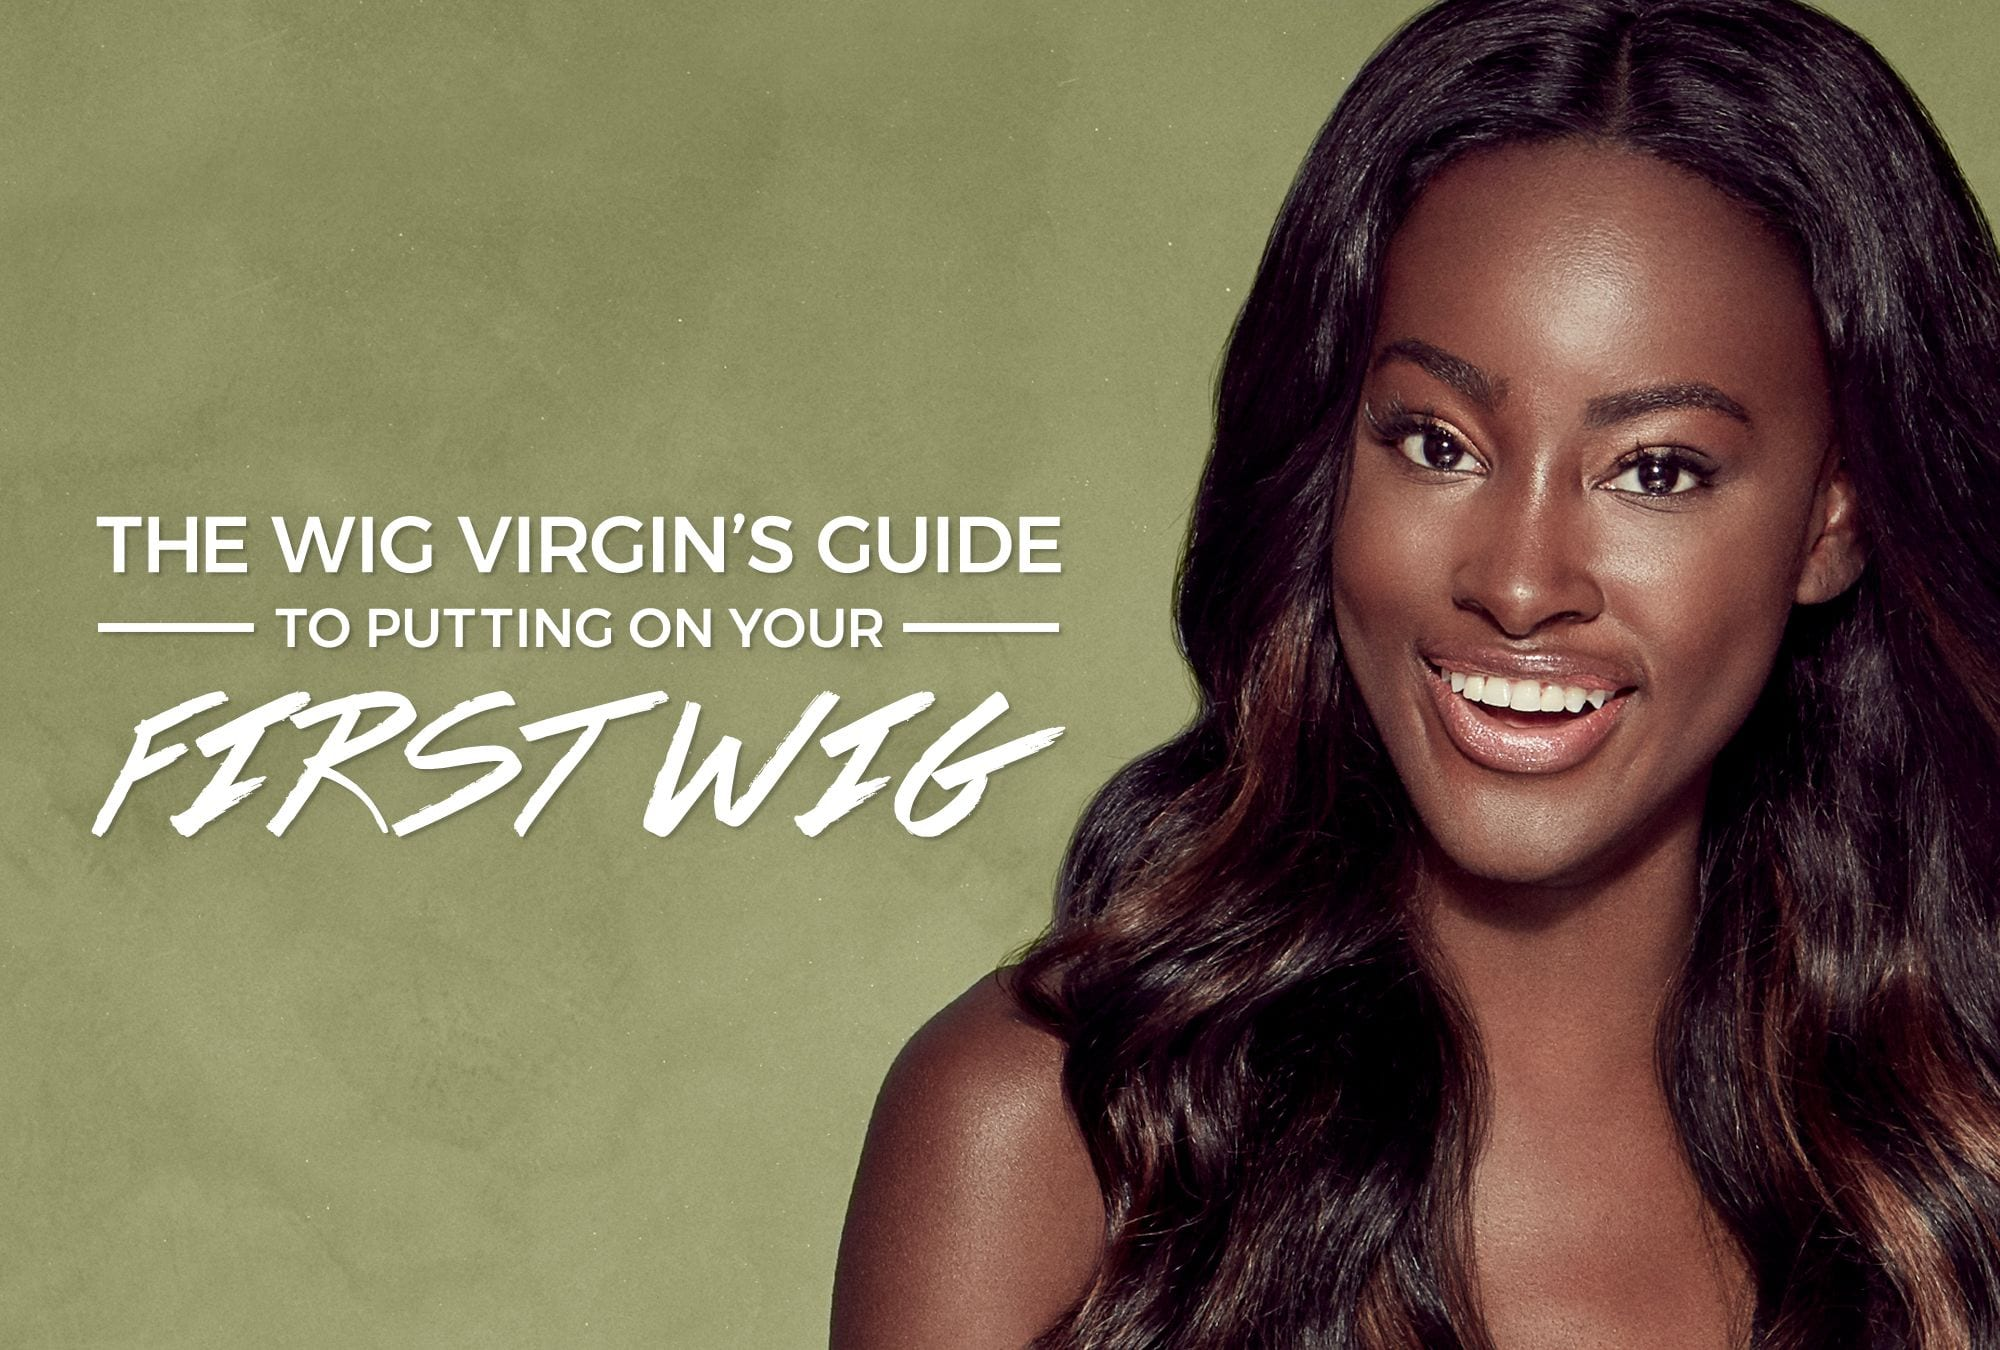 For the first a time wearing wig Wearing a